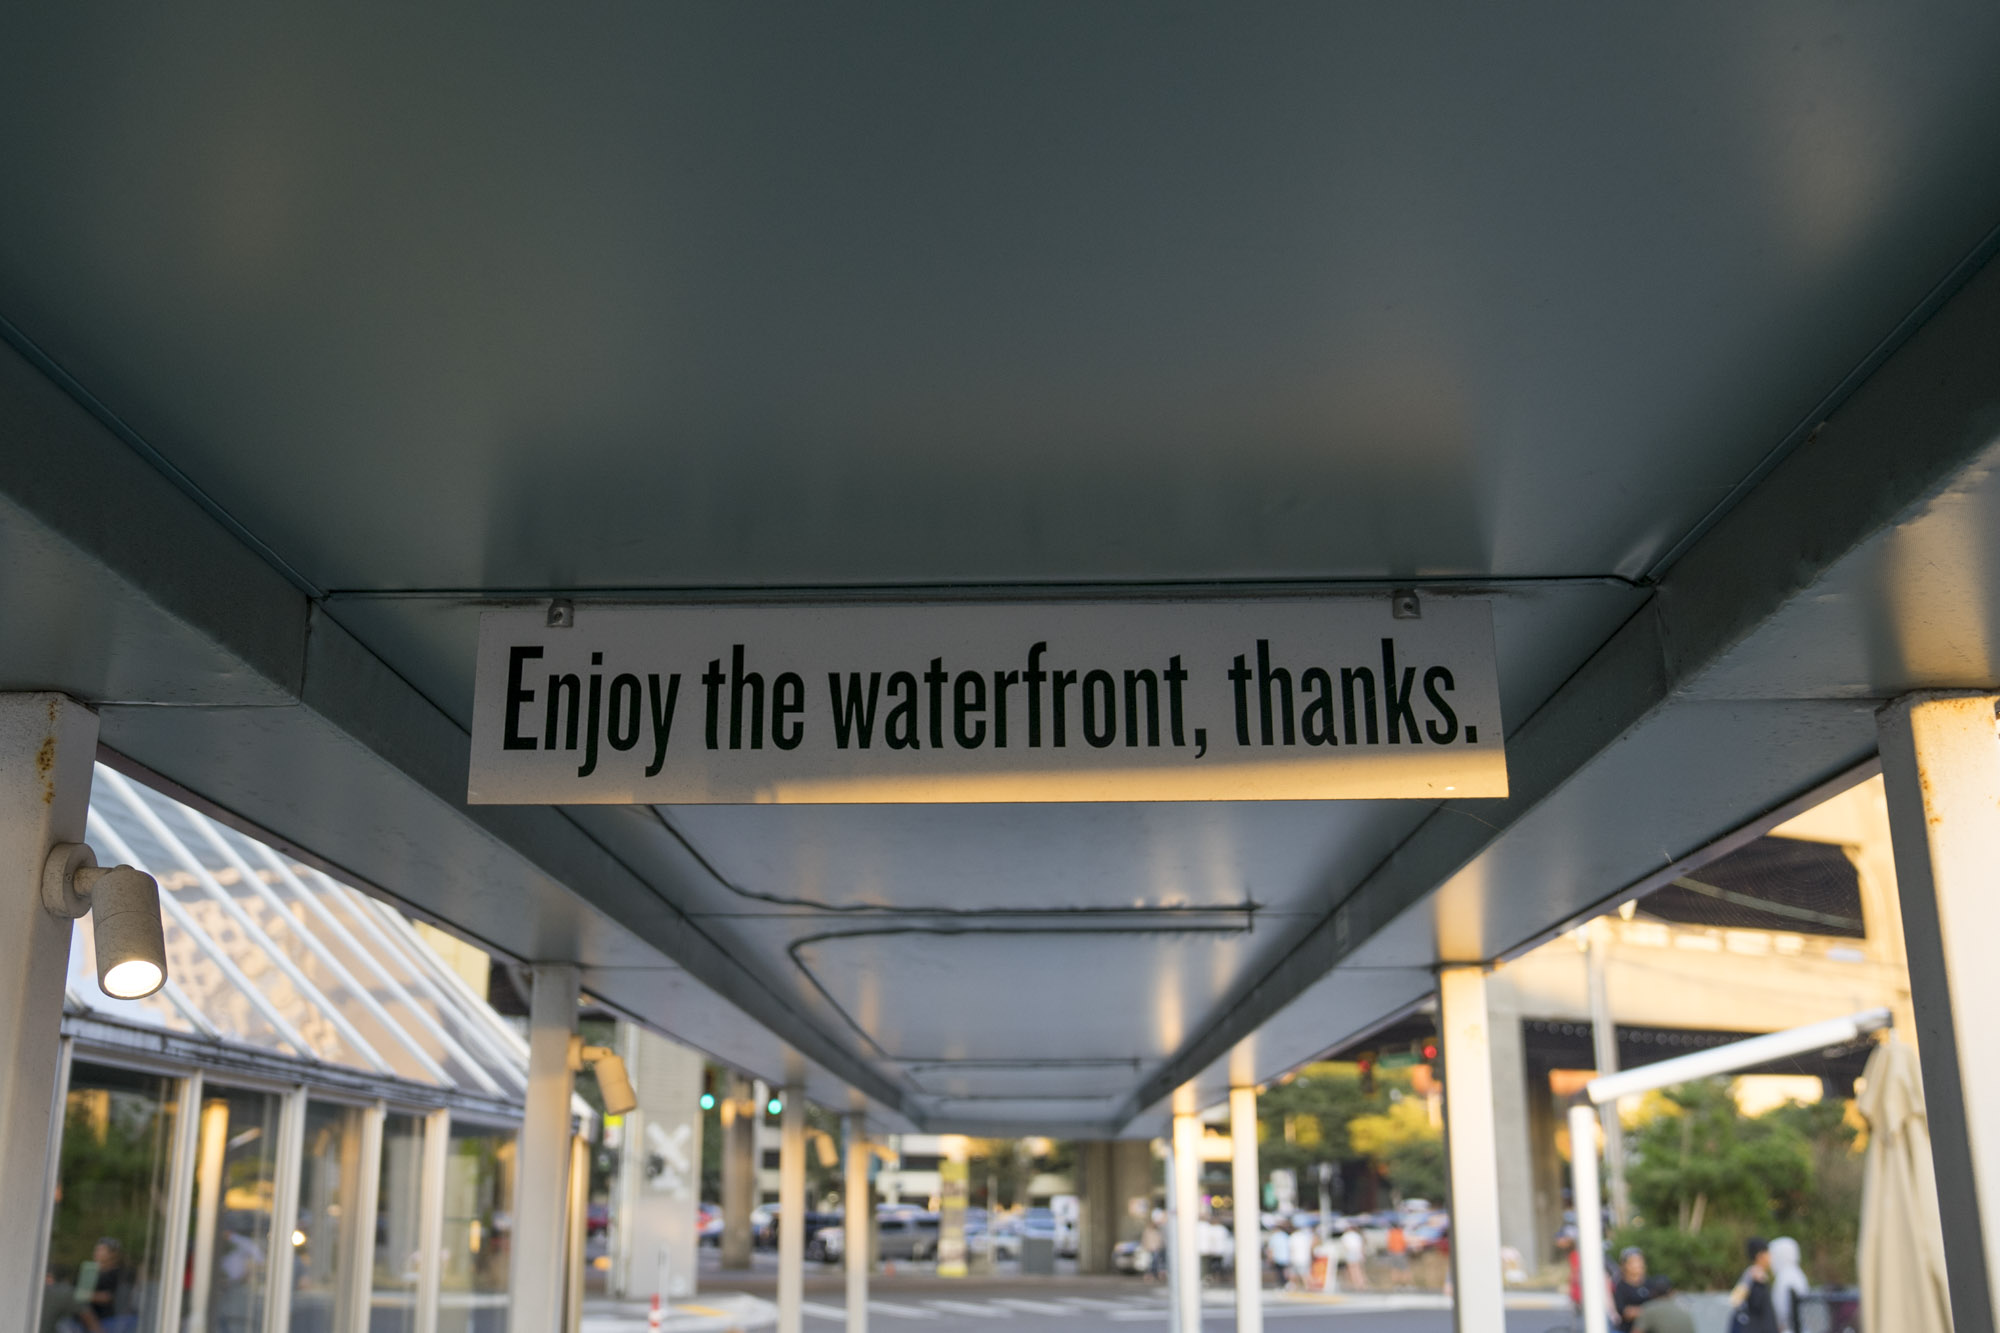 A sign above the harbor in Seattle, Washington.